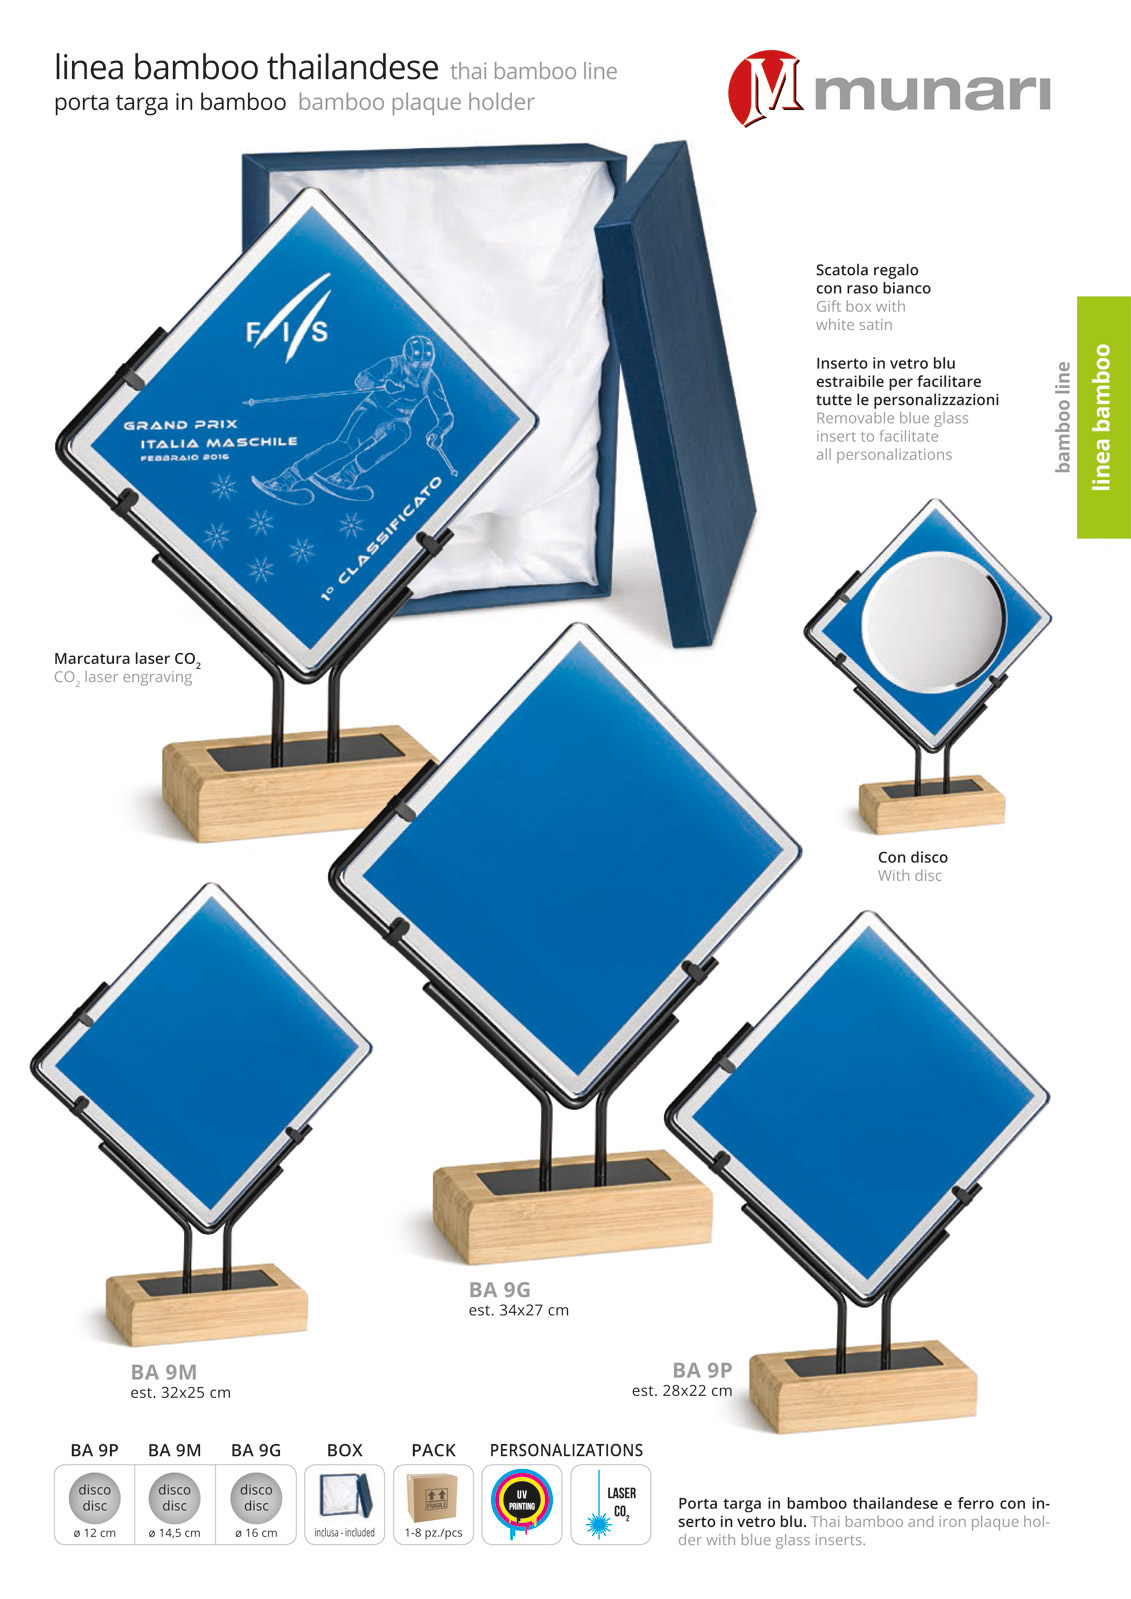 Bamboo trophies with blue glass series BA 9